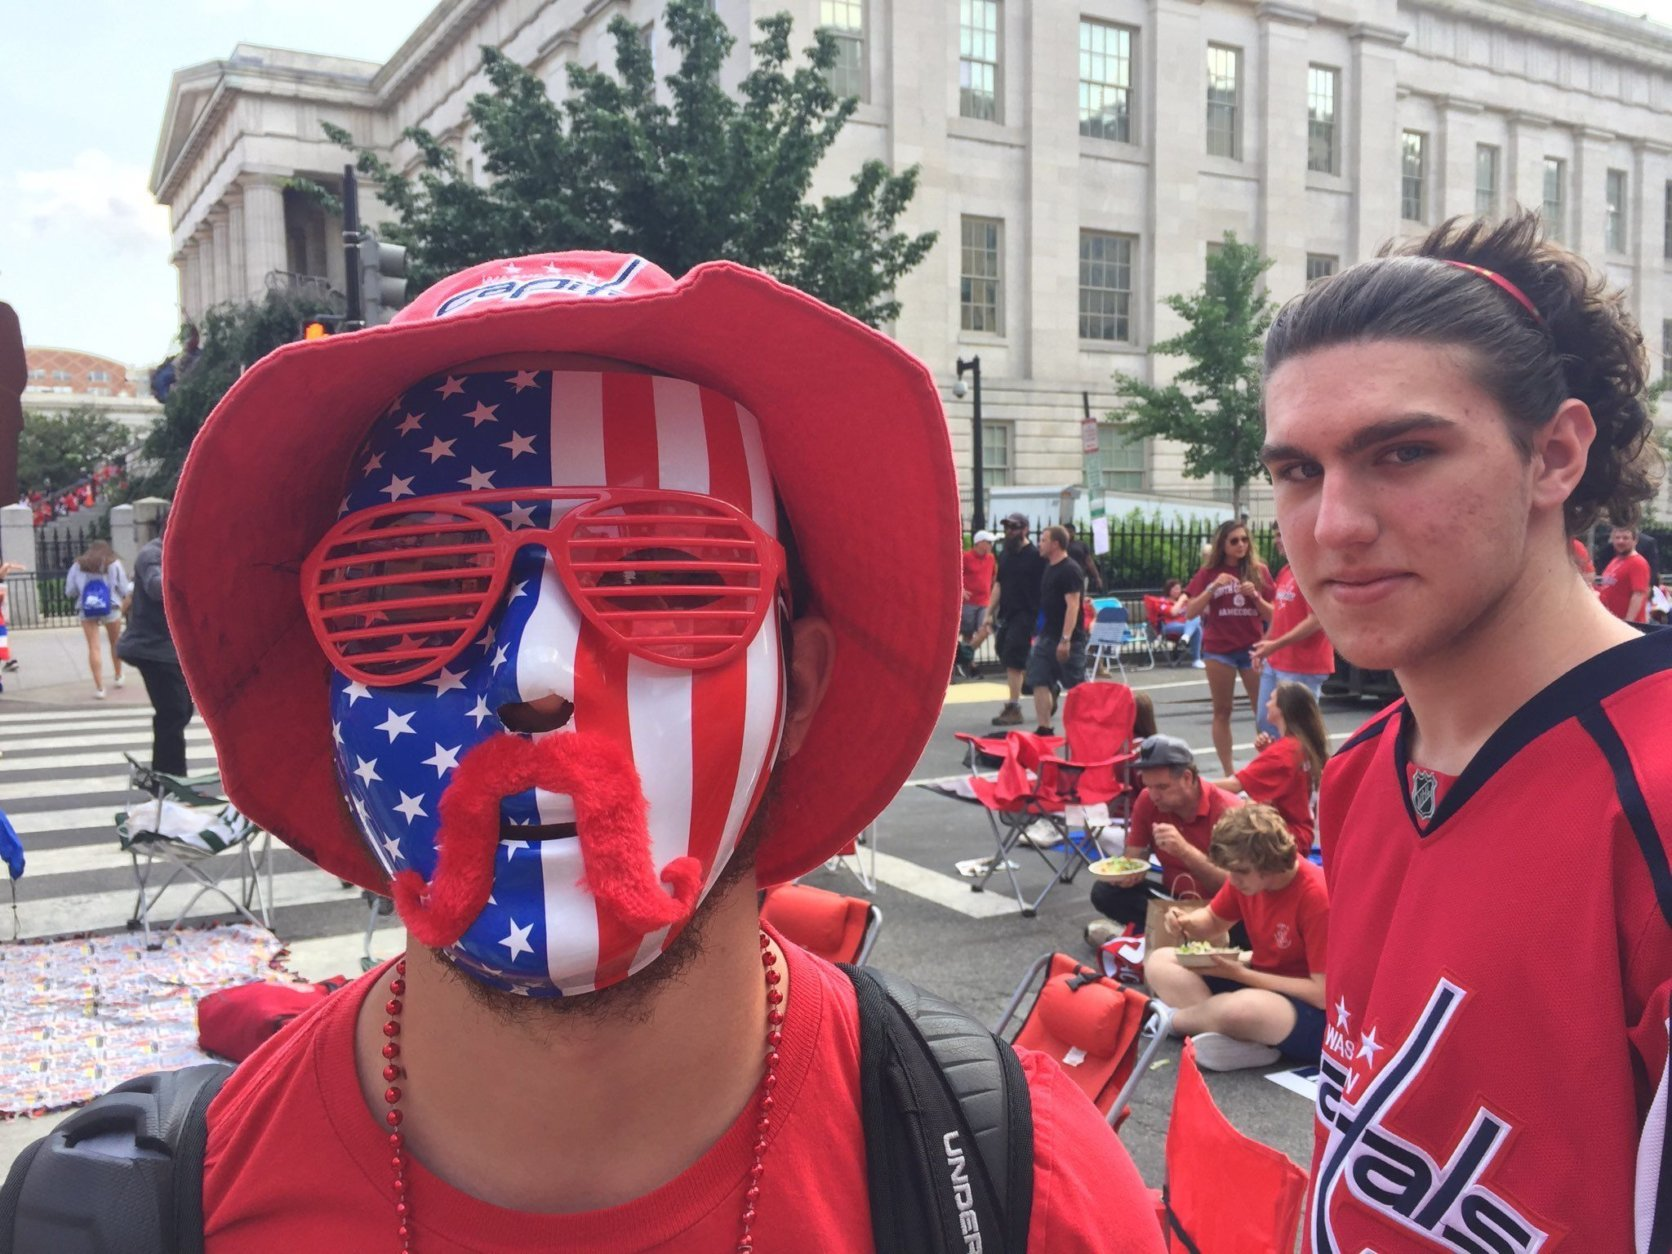 With Game 5 hours away, Caps fans had their game faces on outside Capital One Arena. (WTOP/Kristi King)